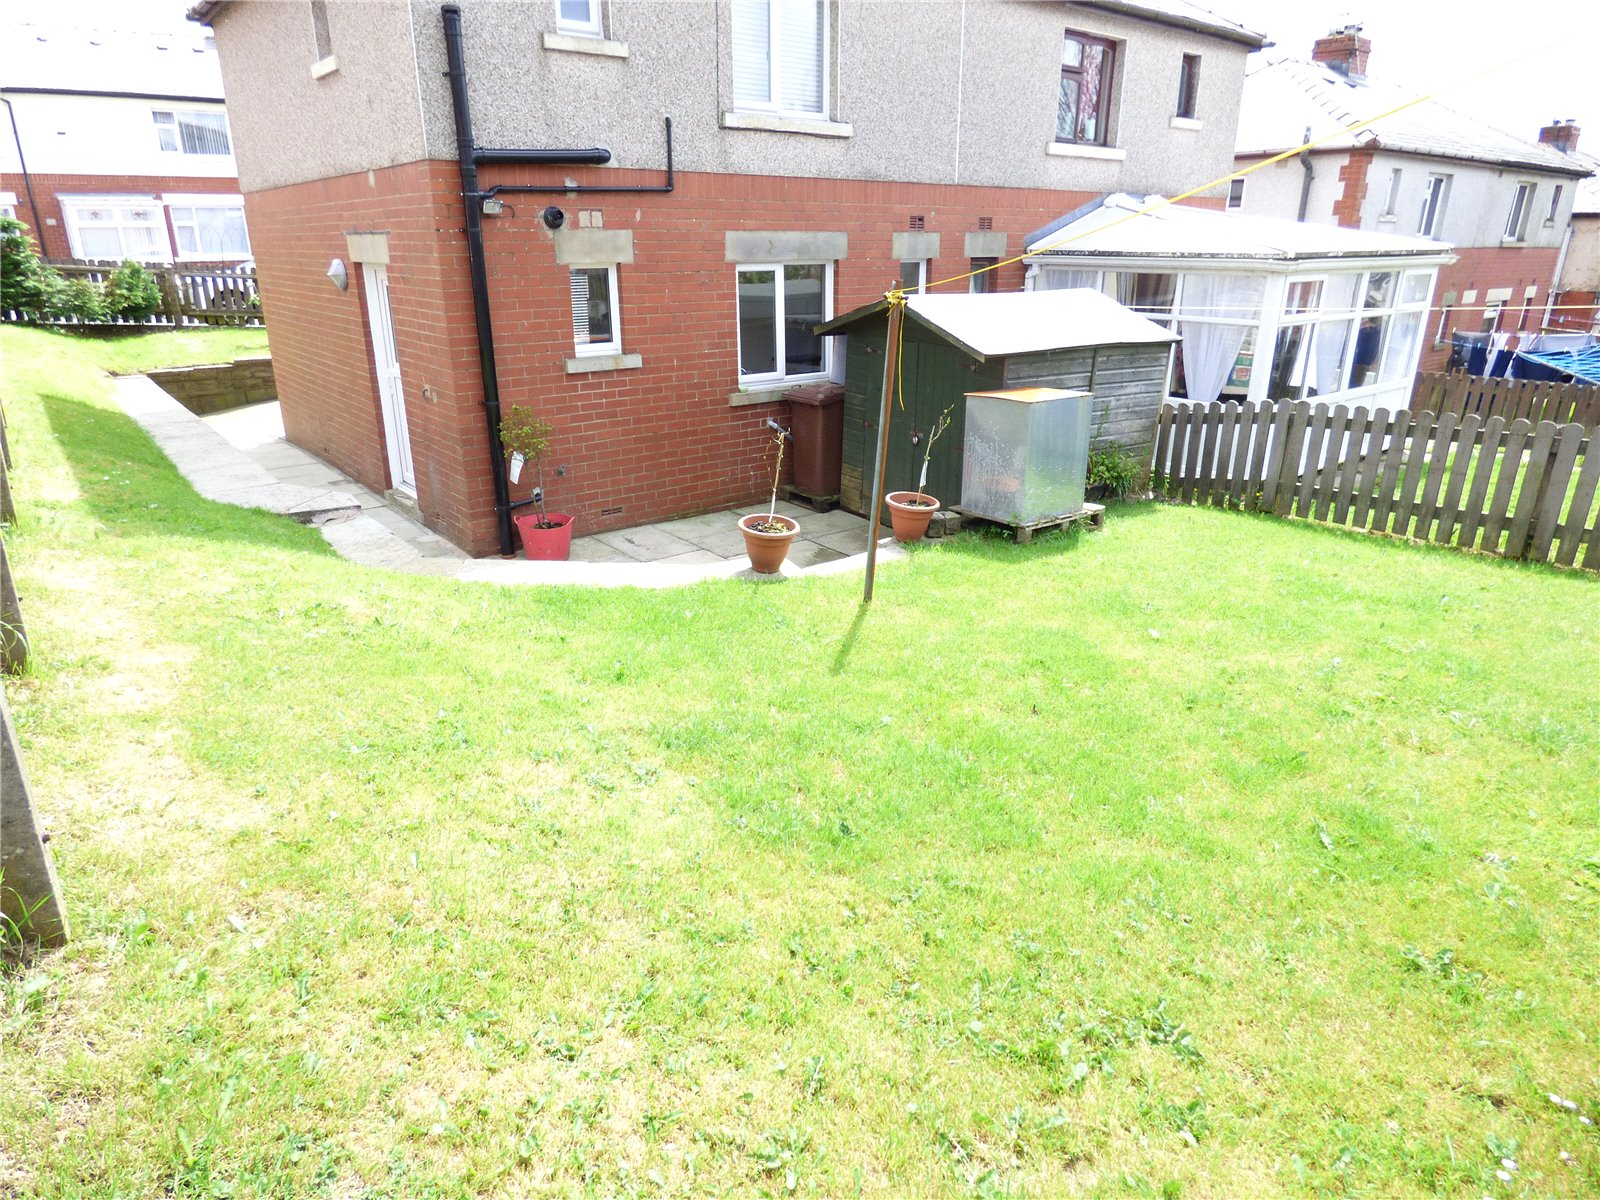 2 Bedrooms Semi Detached House for sale in Walnut Avenue, Haslingden, Rossendale, Lancashire, BB4